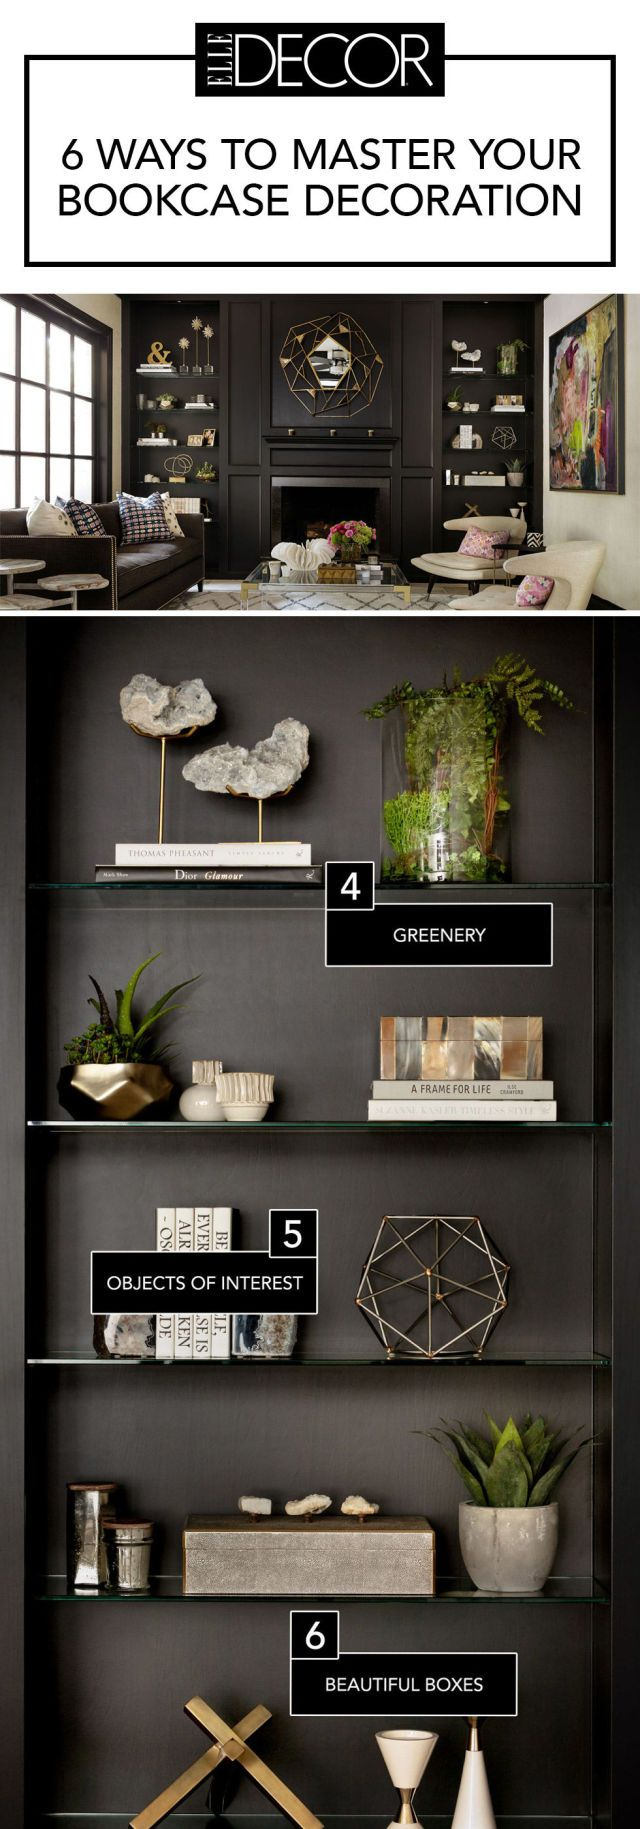 6 Secrets To A Perfectly Styled Bookcase Bookcase Decor Decorating Shelves Decor